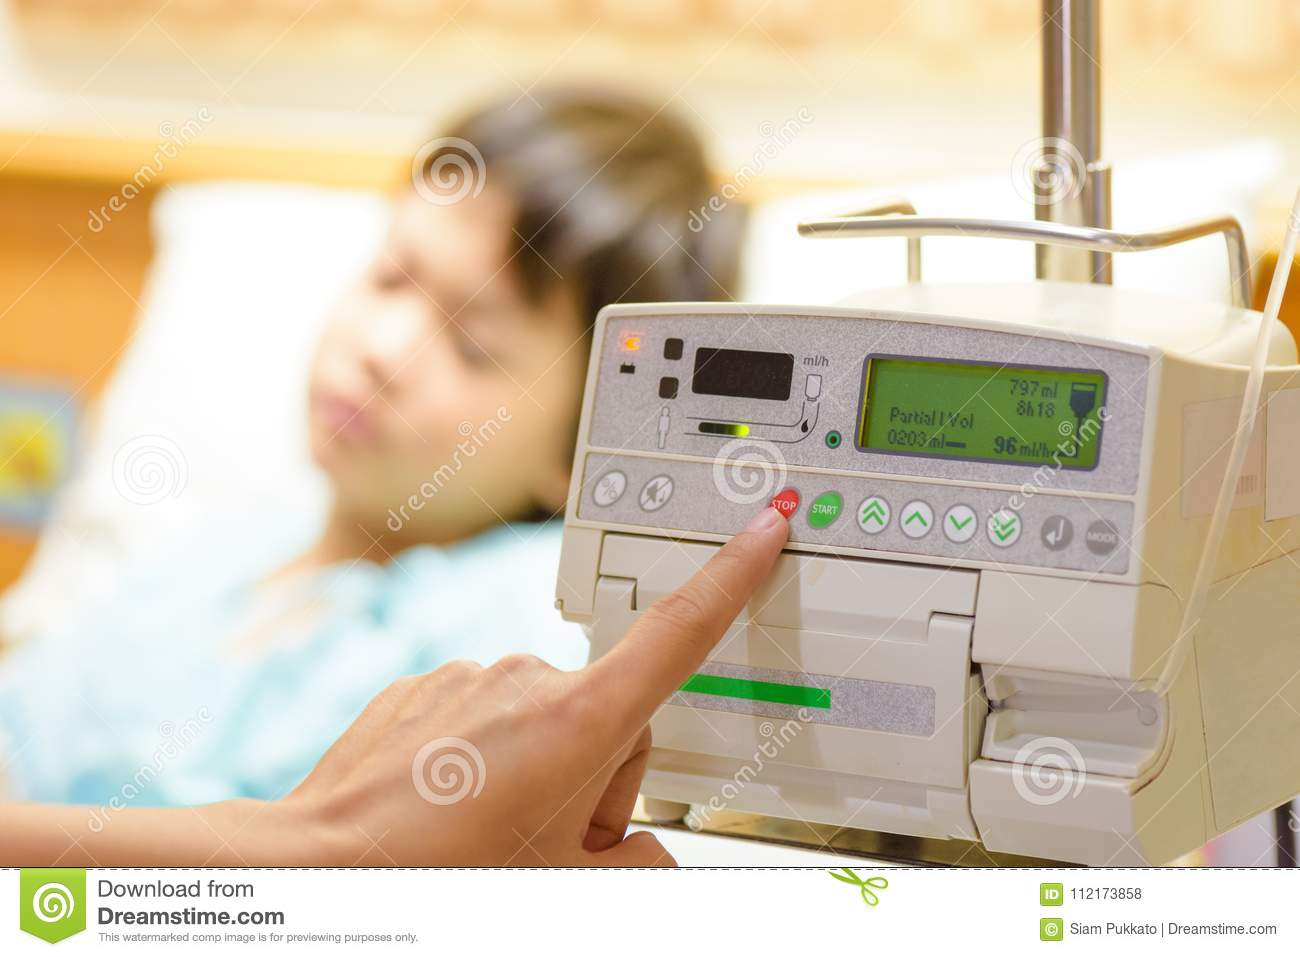 Nurse`s hand pressing on infusion pump intravenous IV drip